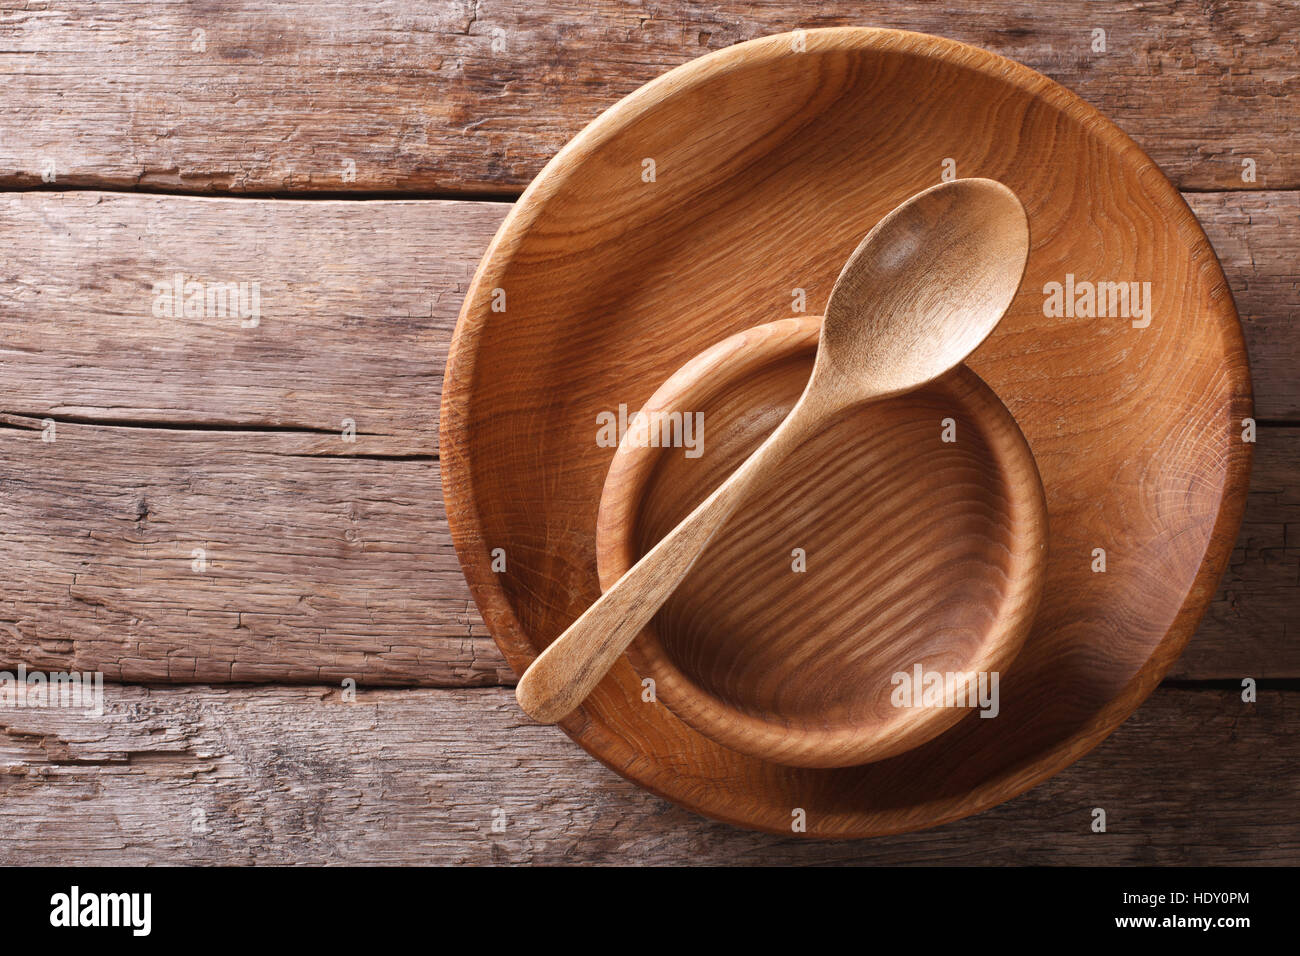 Wooden dish and spoon in a rustic style. horizontal view from above Stock Photo